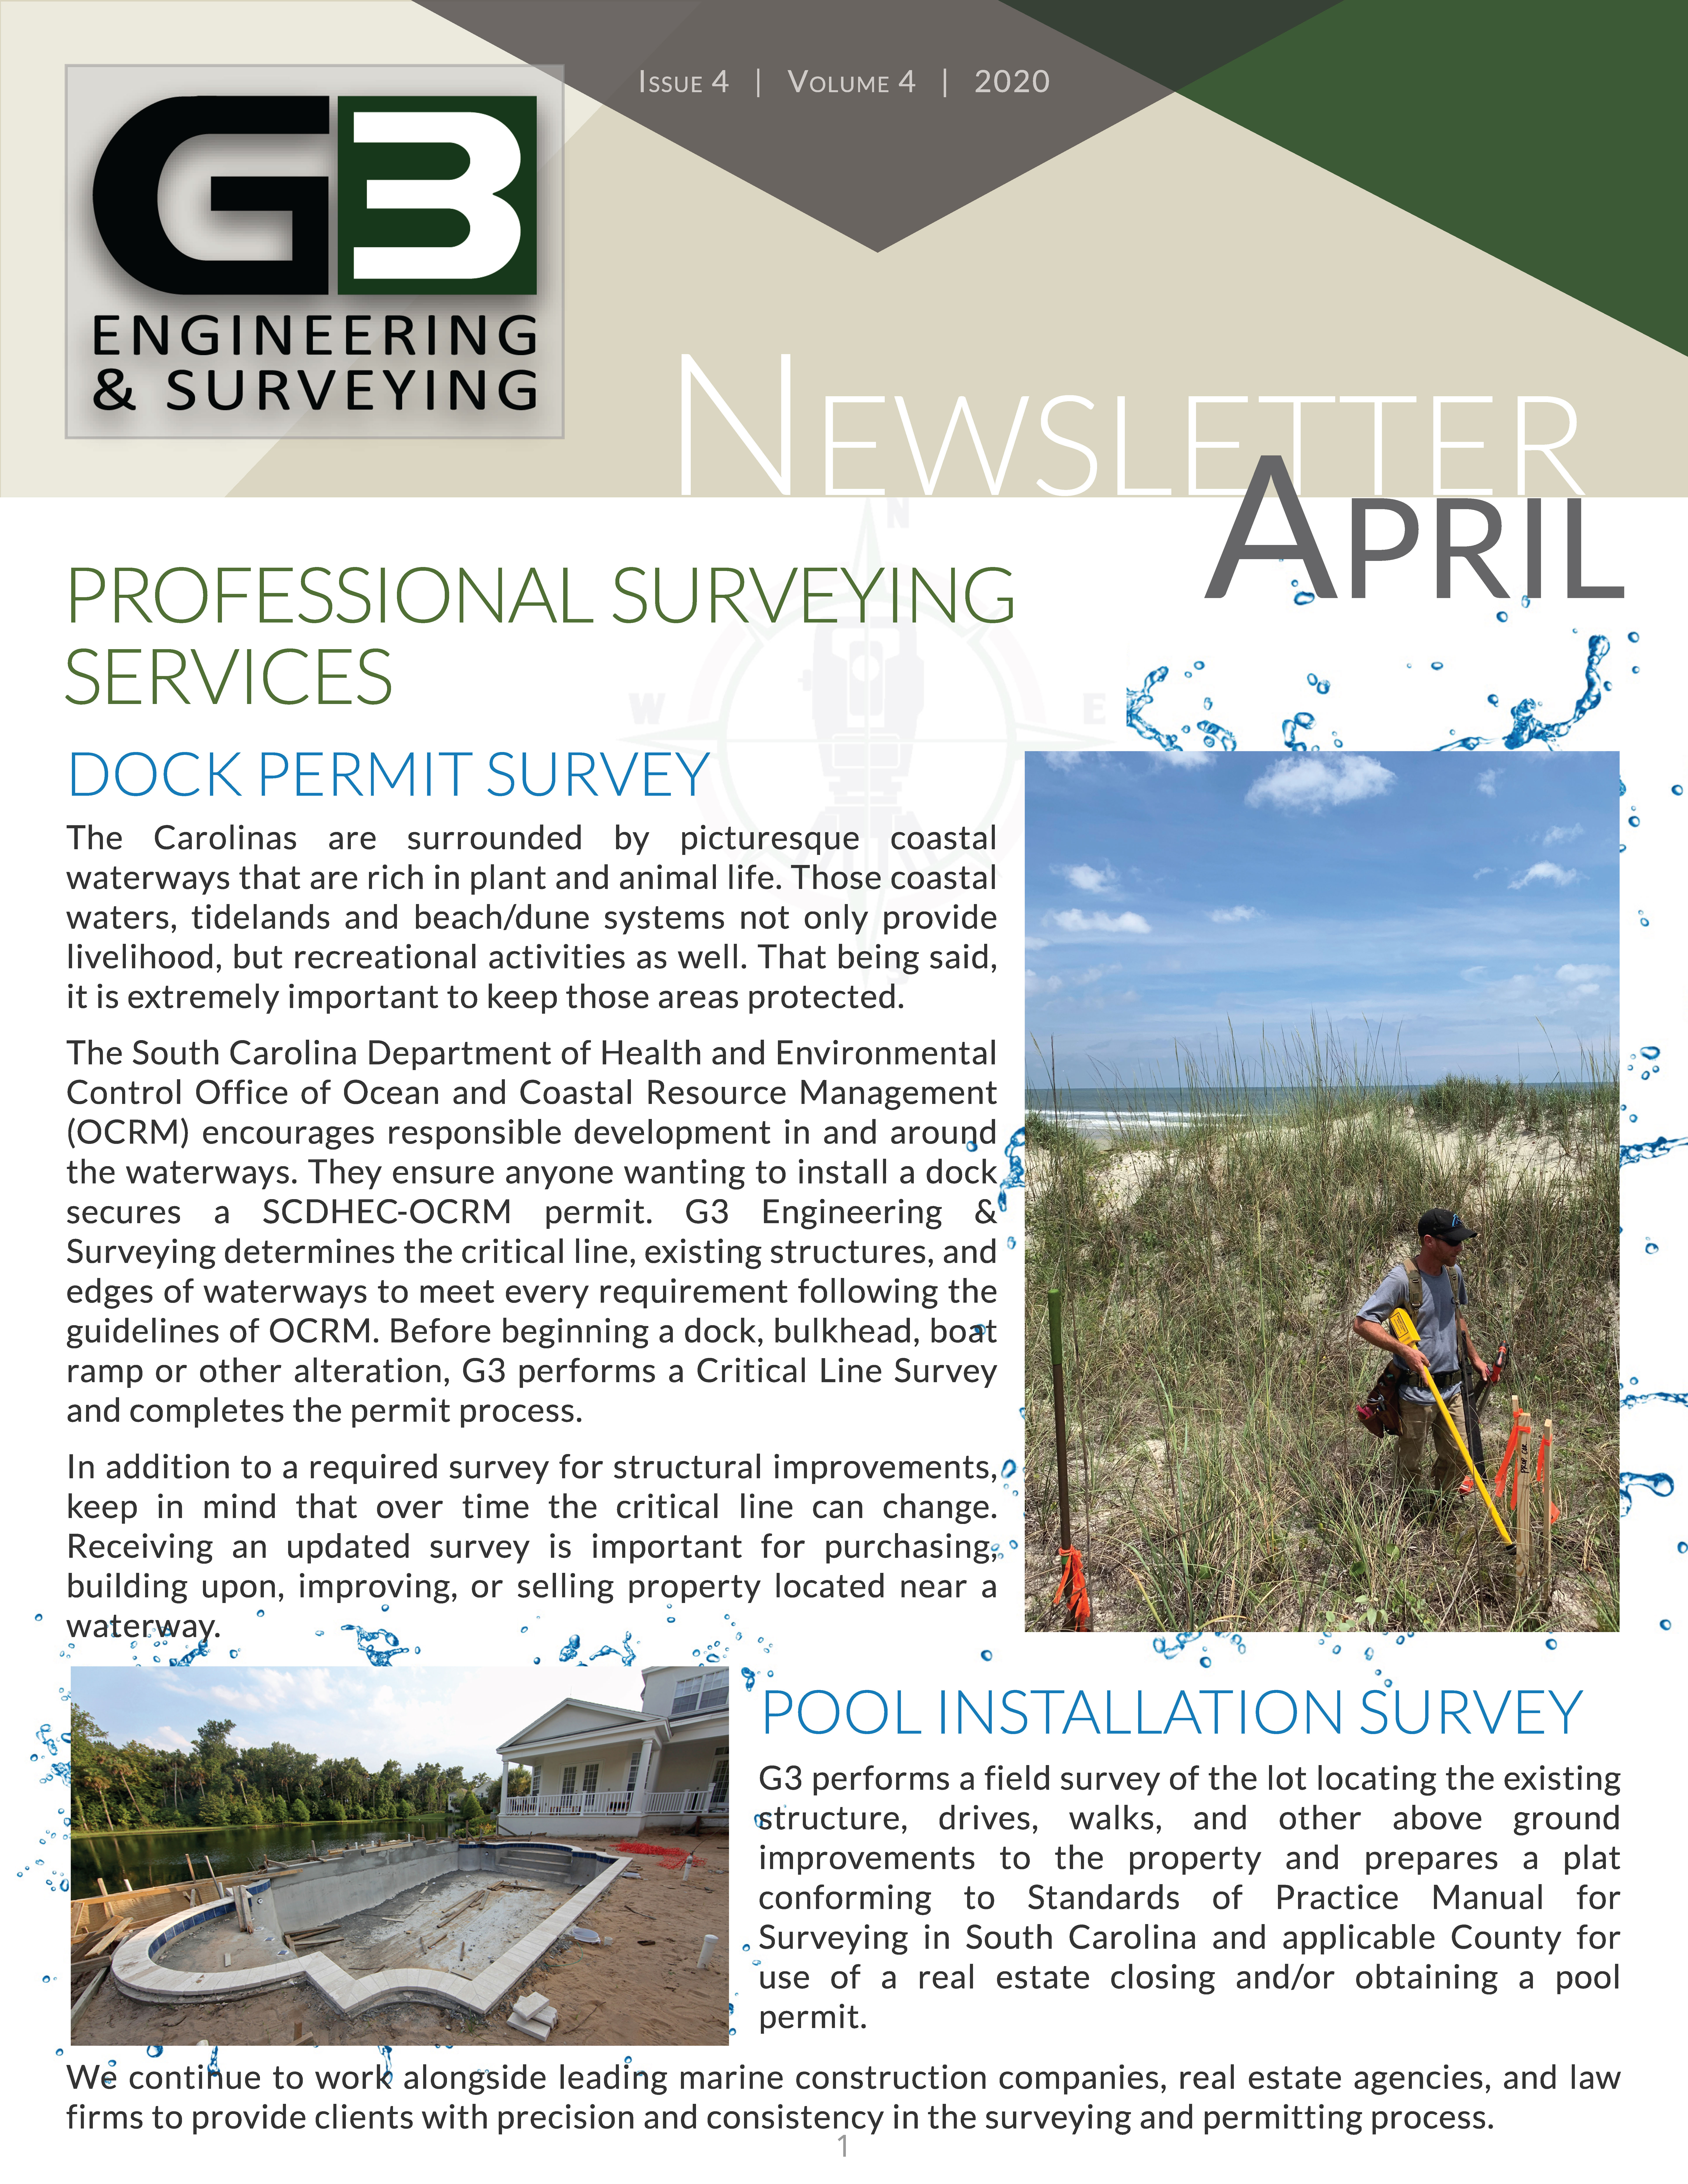 Professional Surveying Services - Dock Permit Survey & Pool Installation Survey